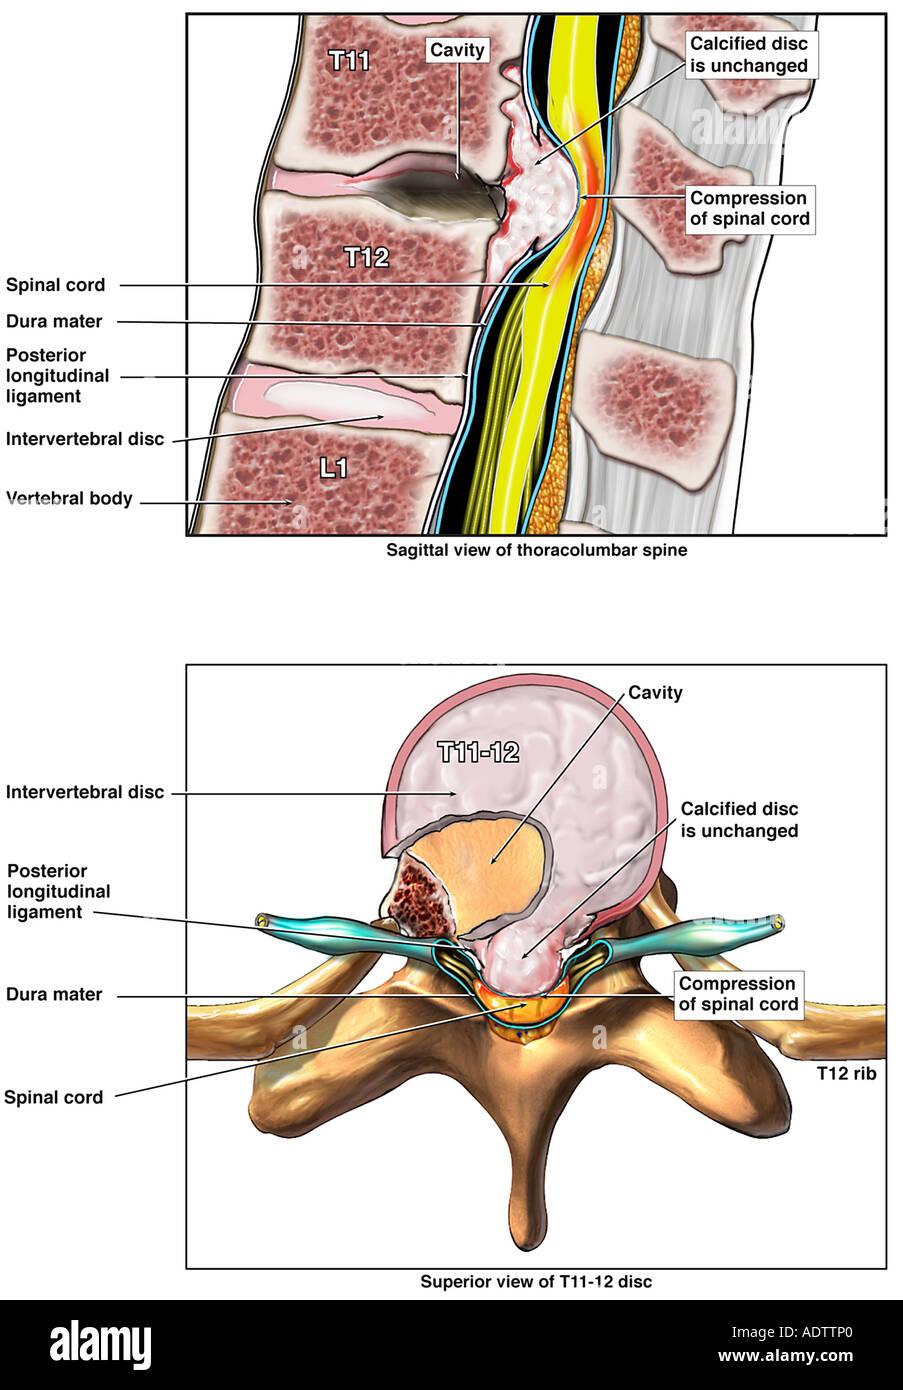 Failure to Repair Rupture of T11-12 Disc and Severe Spinal Cord Compression - Stock Image